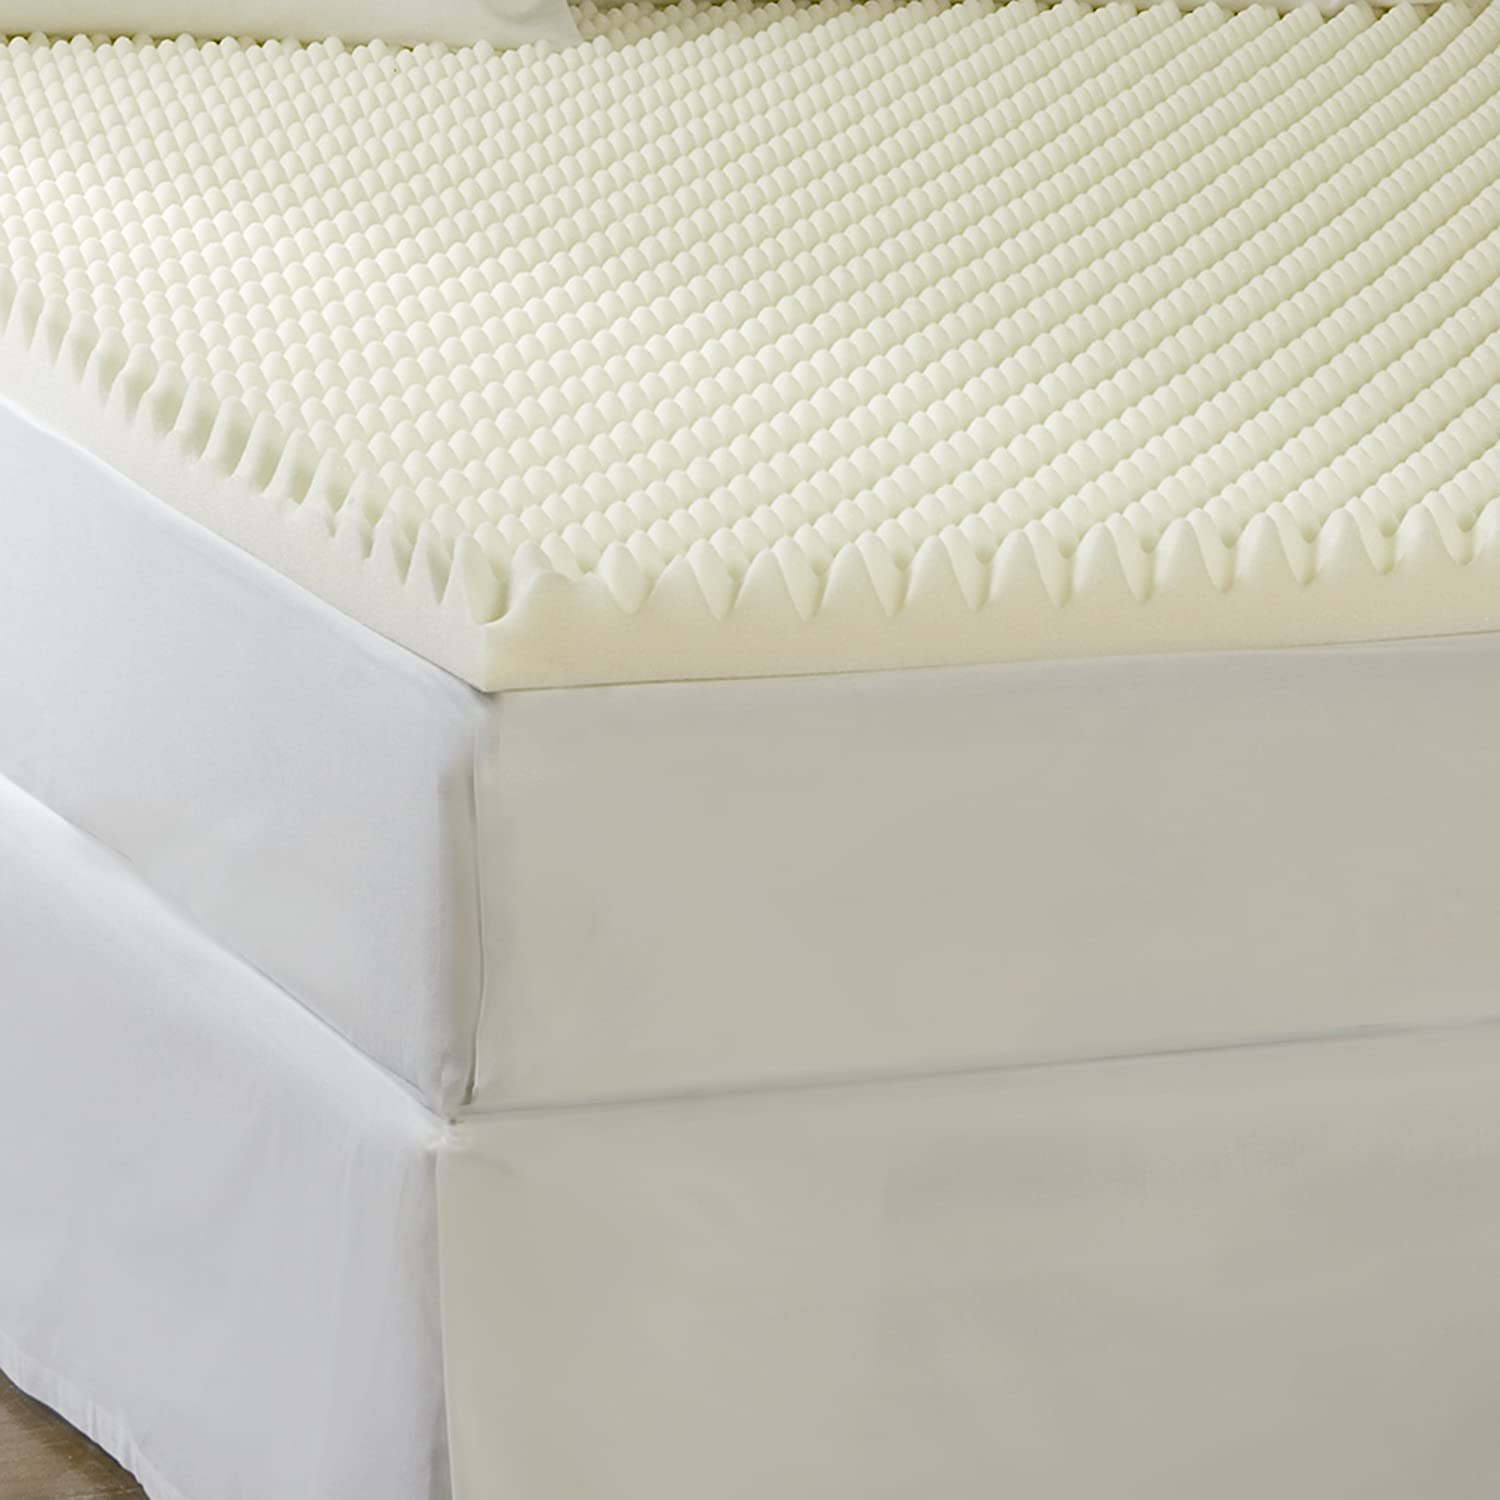 Best 4 inch memory foam mattress topper the best for Best foam mattress